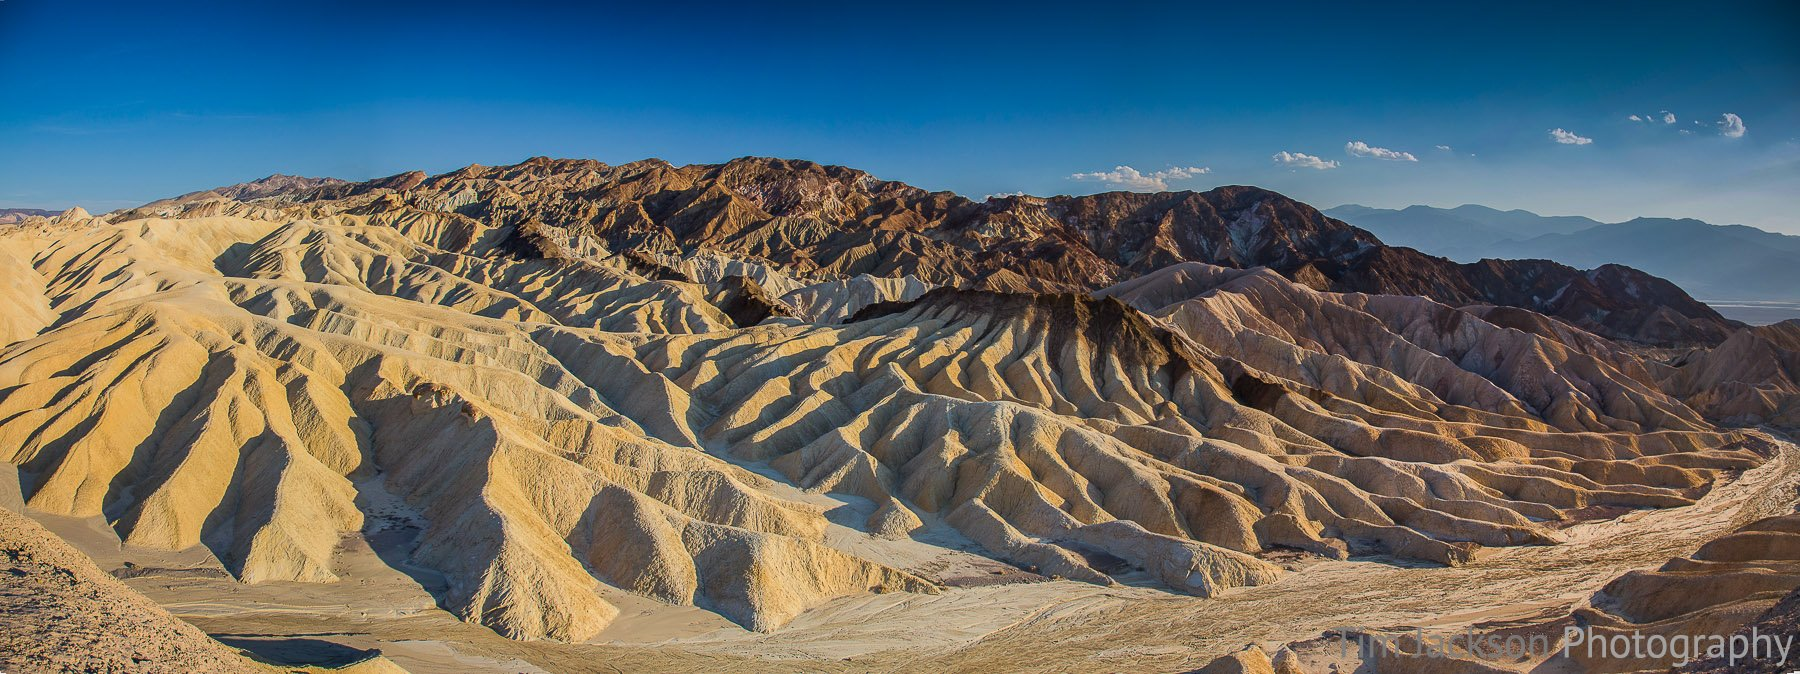 Zabriskie Point Death Valley Panorama